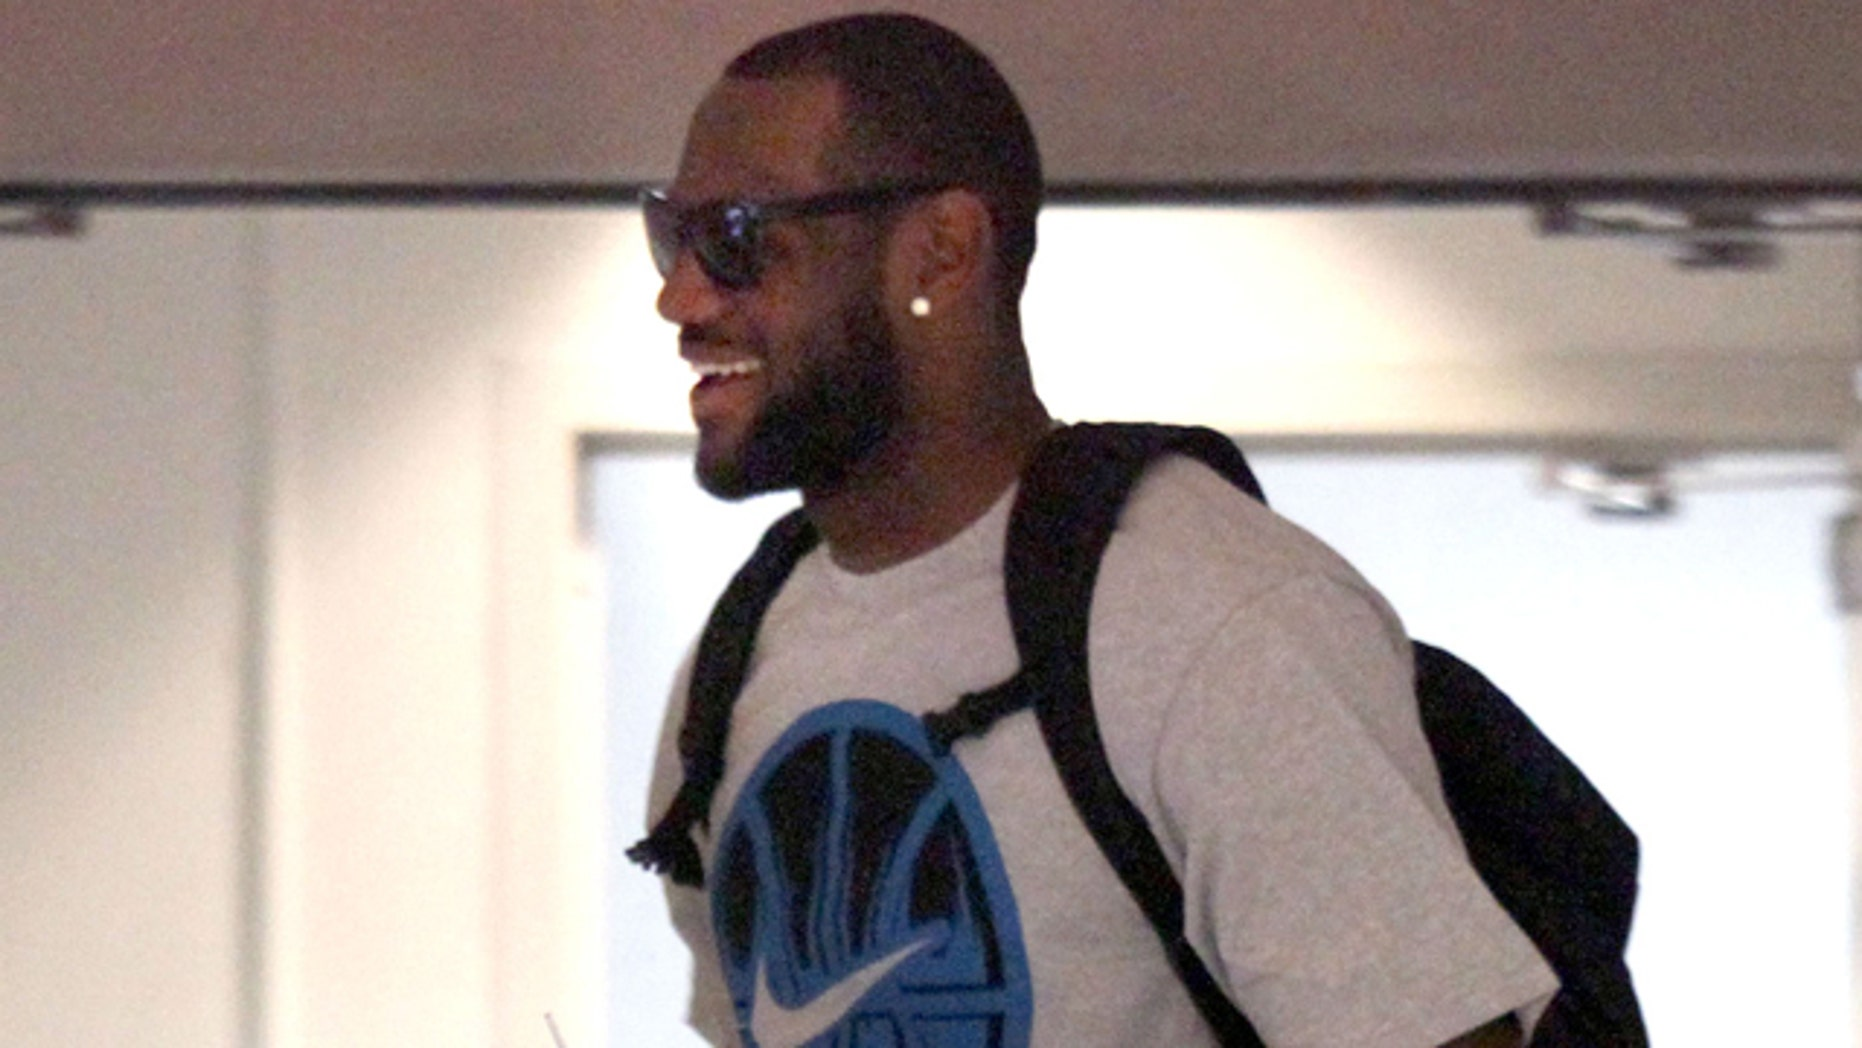 July 2: Free agent basketball player LeBron James makes his way through the IMG building to talk with the Miami Heat in Cleveland.